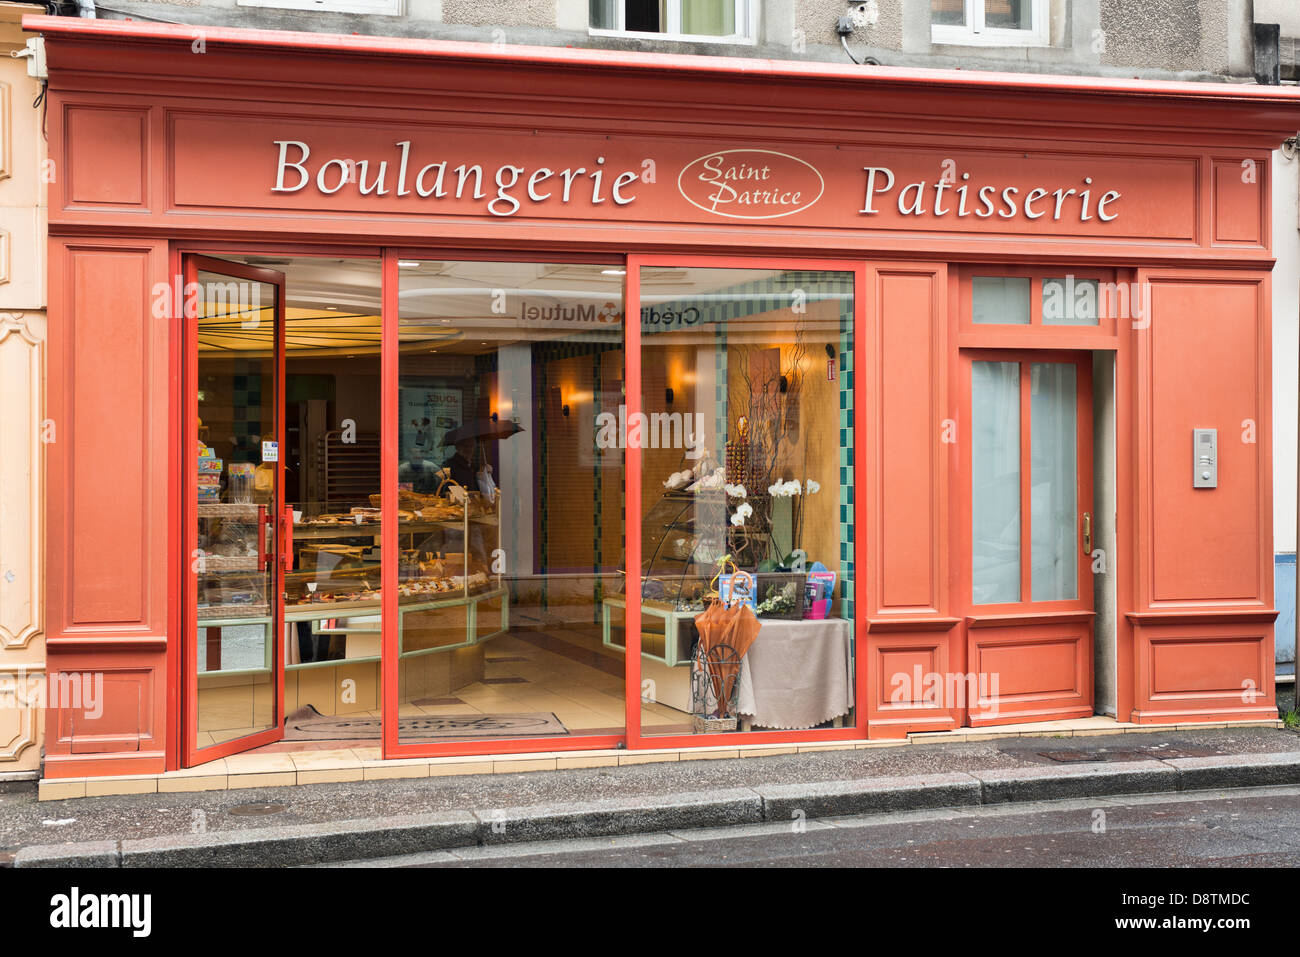 A French boulangerie and patisserie in Bayeux, Normandy, France - Stock Image